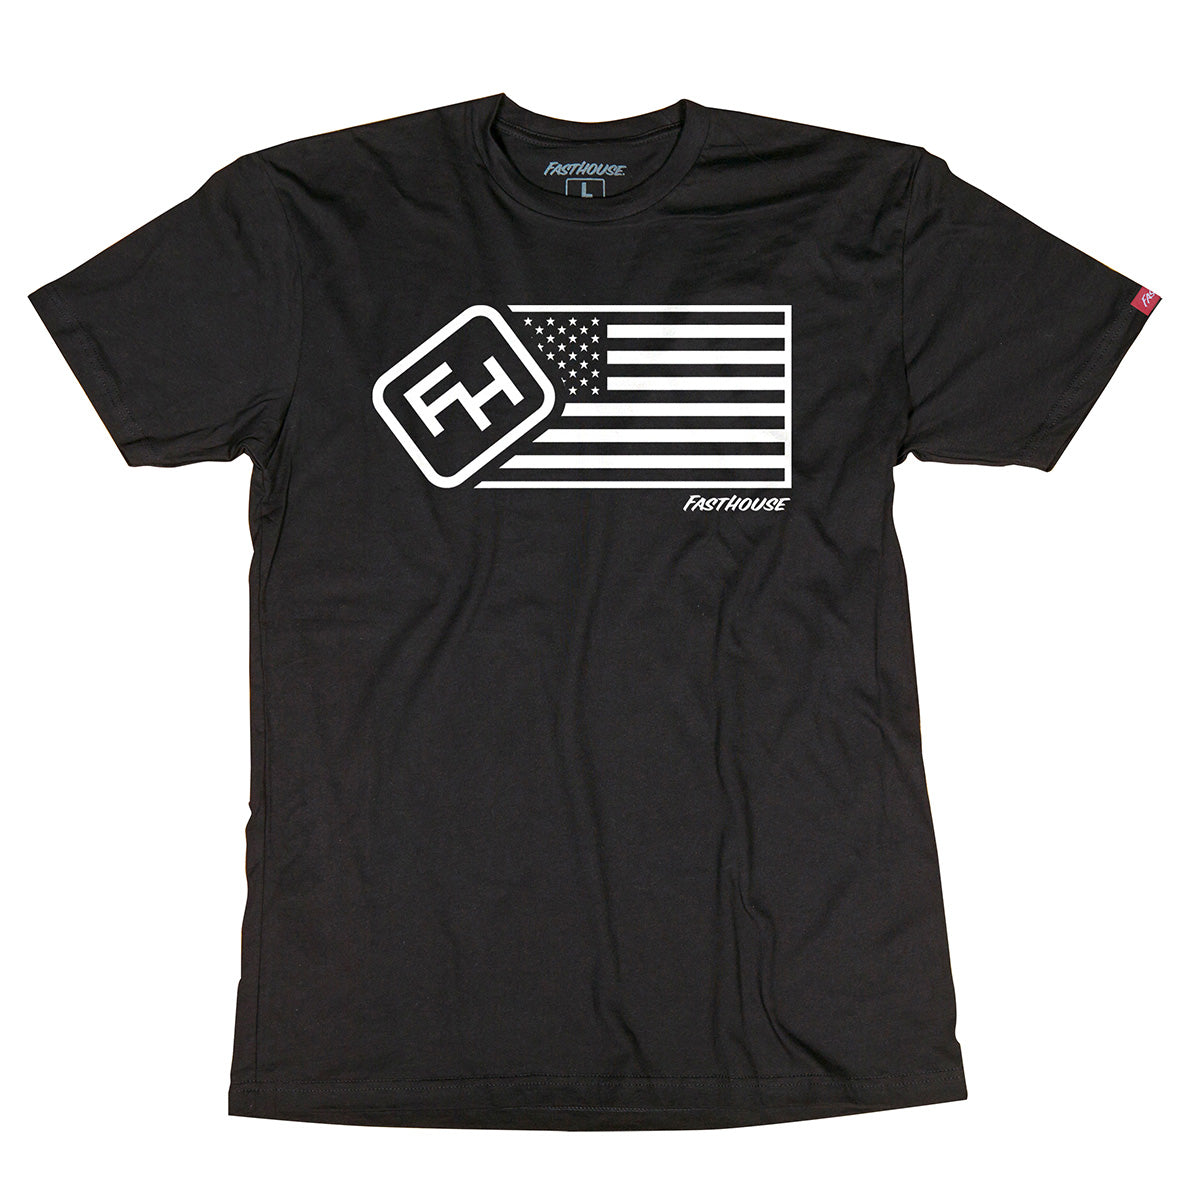 Fasthouse - USA Tee - Black